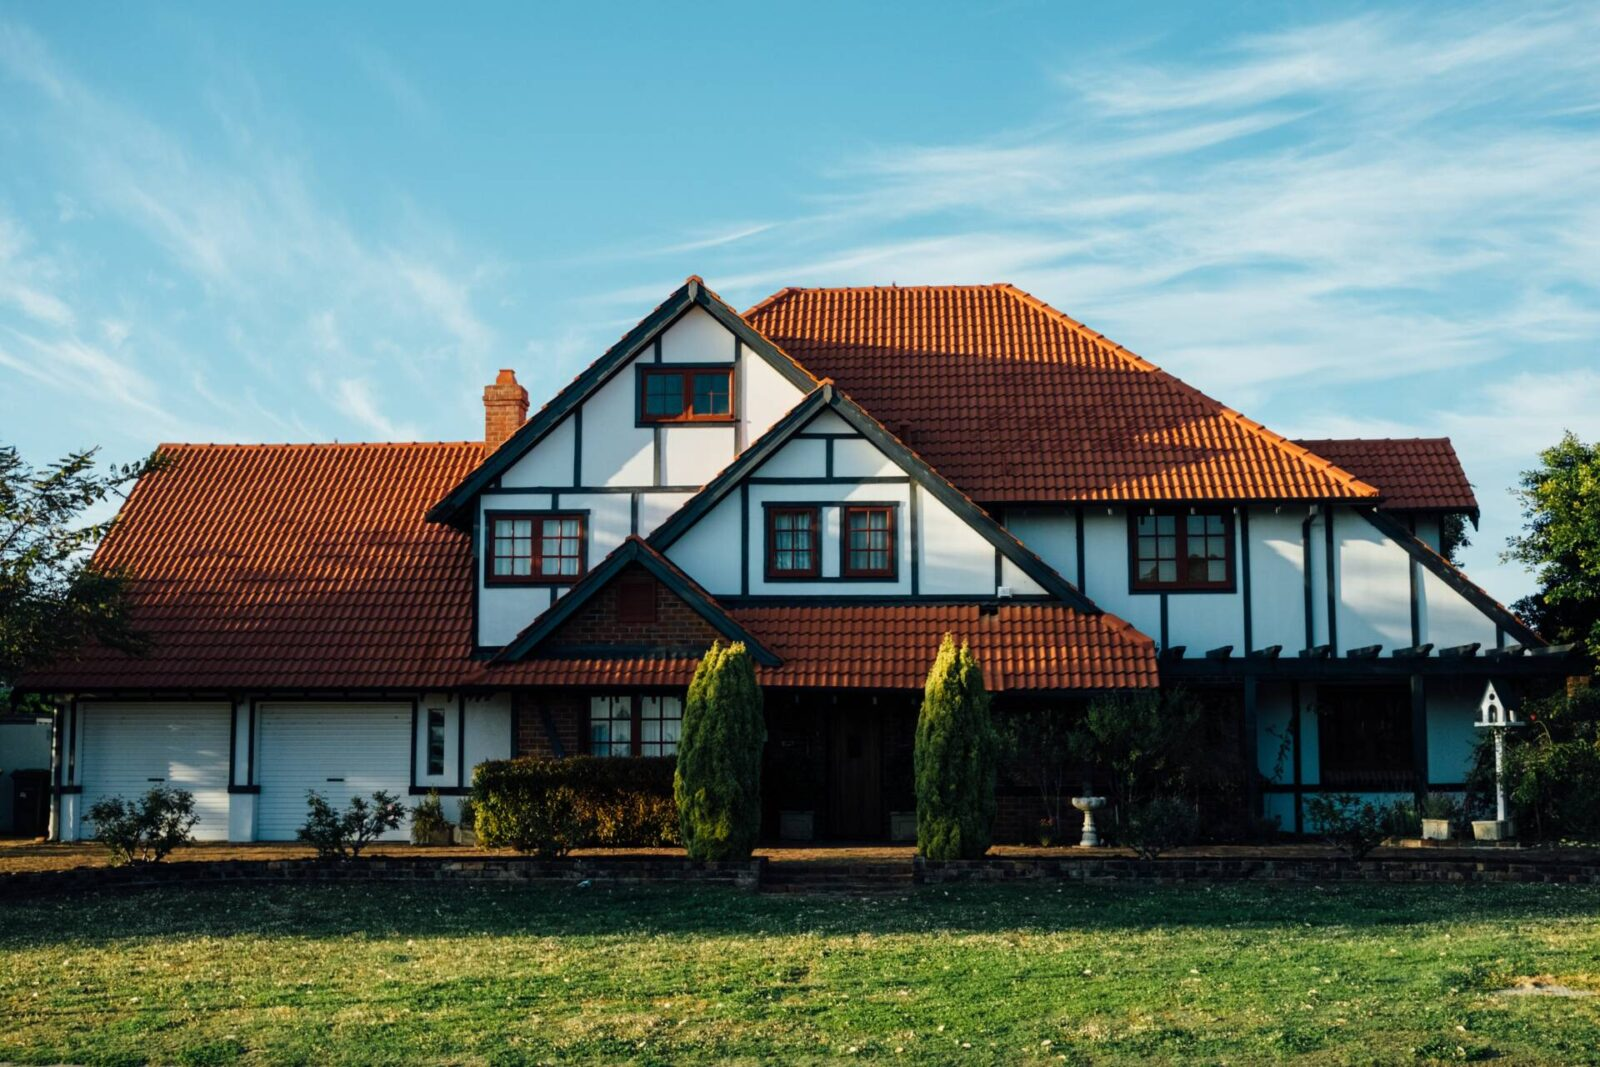 Renovating Your Home's Exterior on a Budget